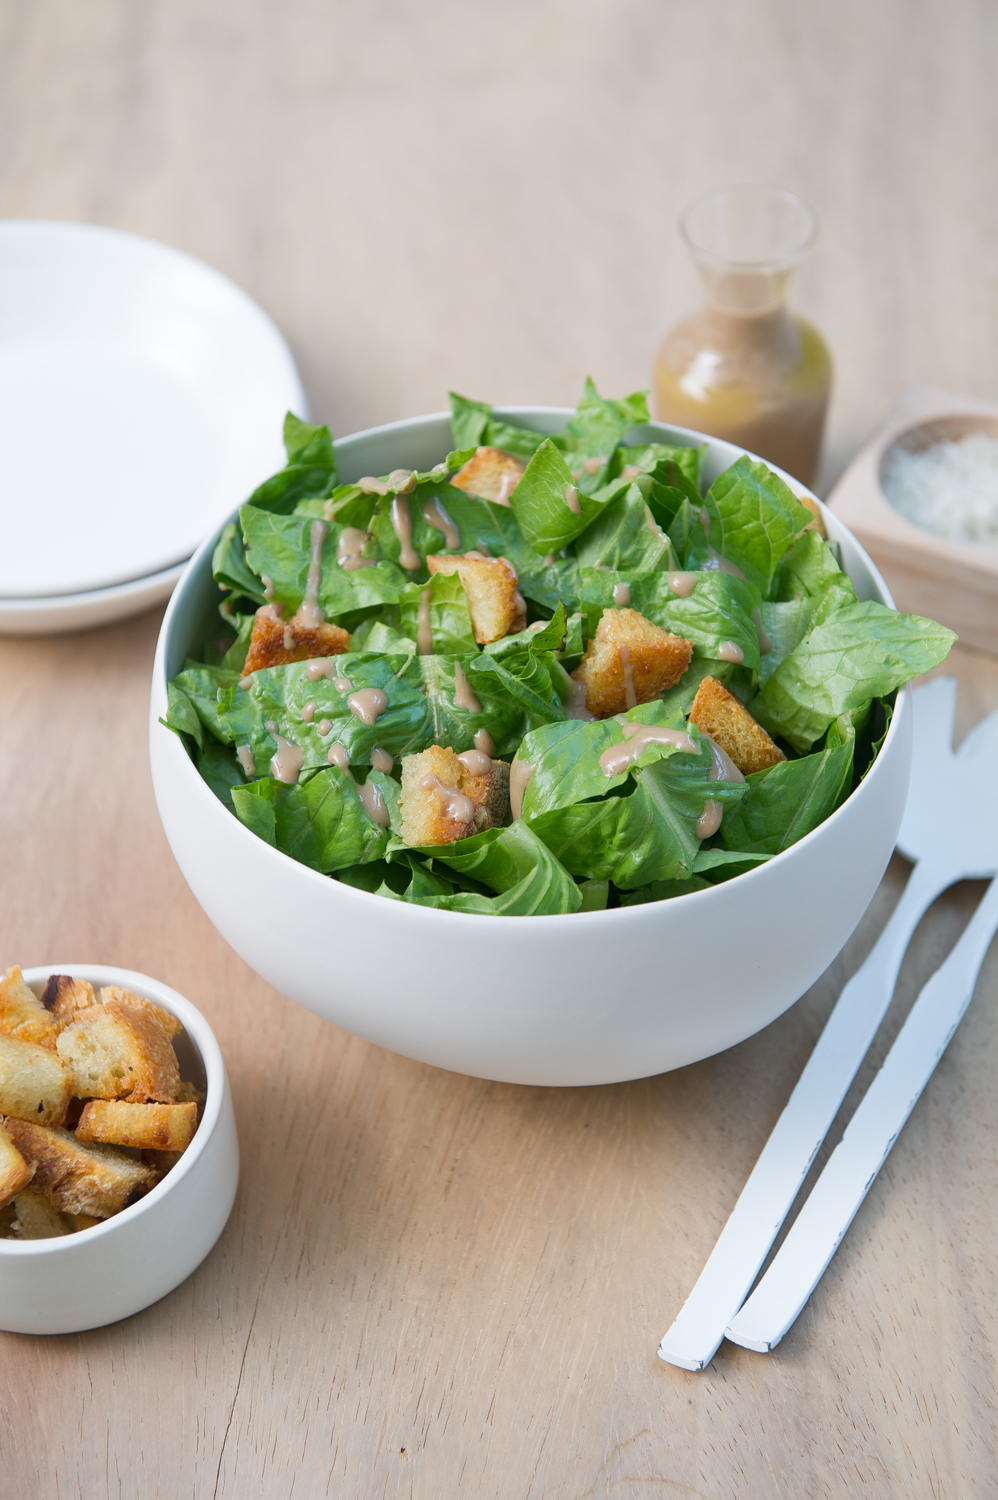 Vegan Caeser Salad with Homemade Croutons. Vegan, Gluten free option.